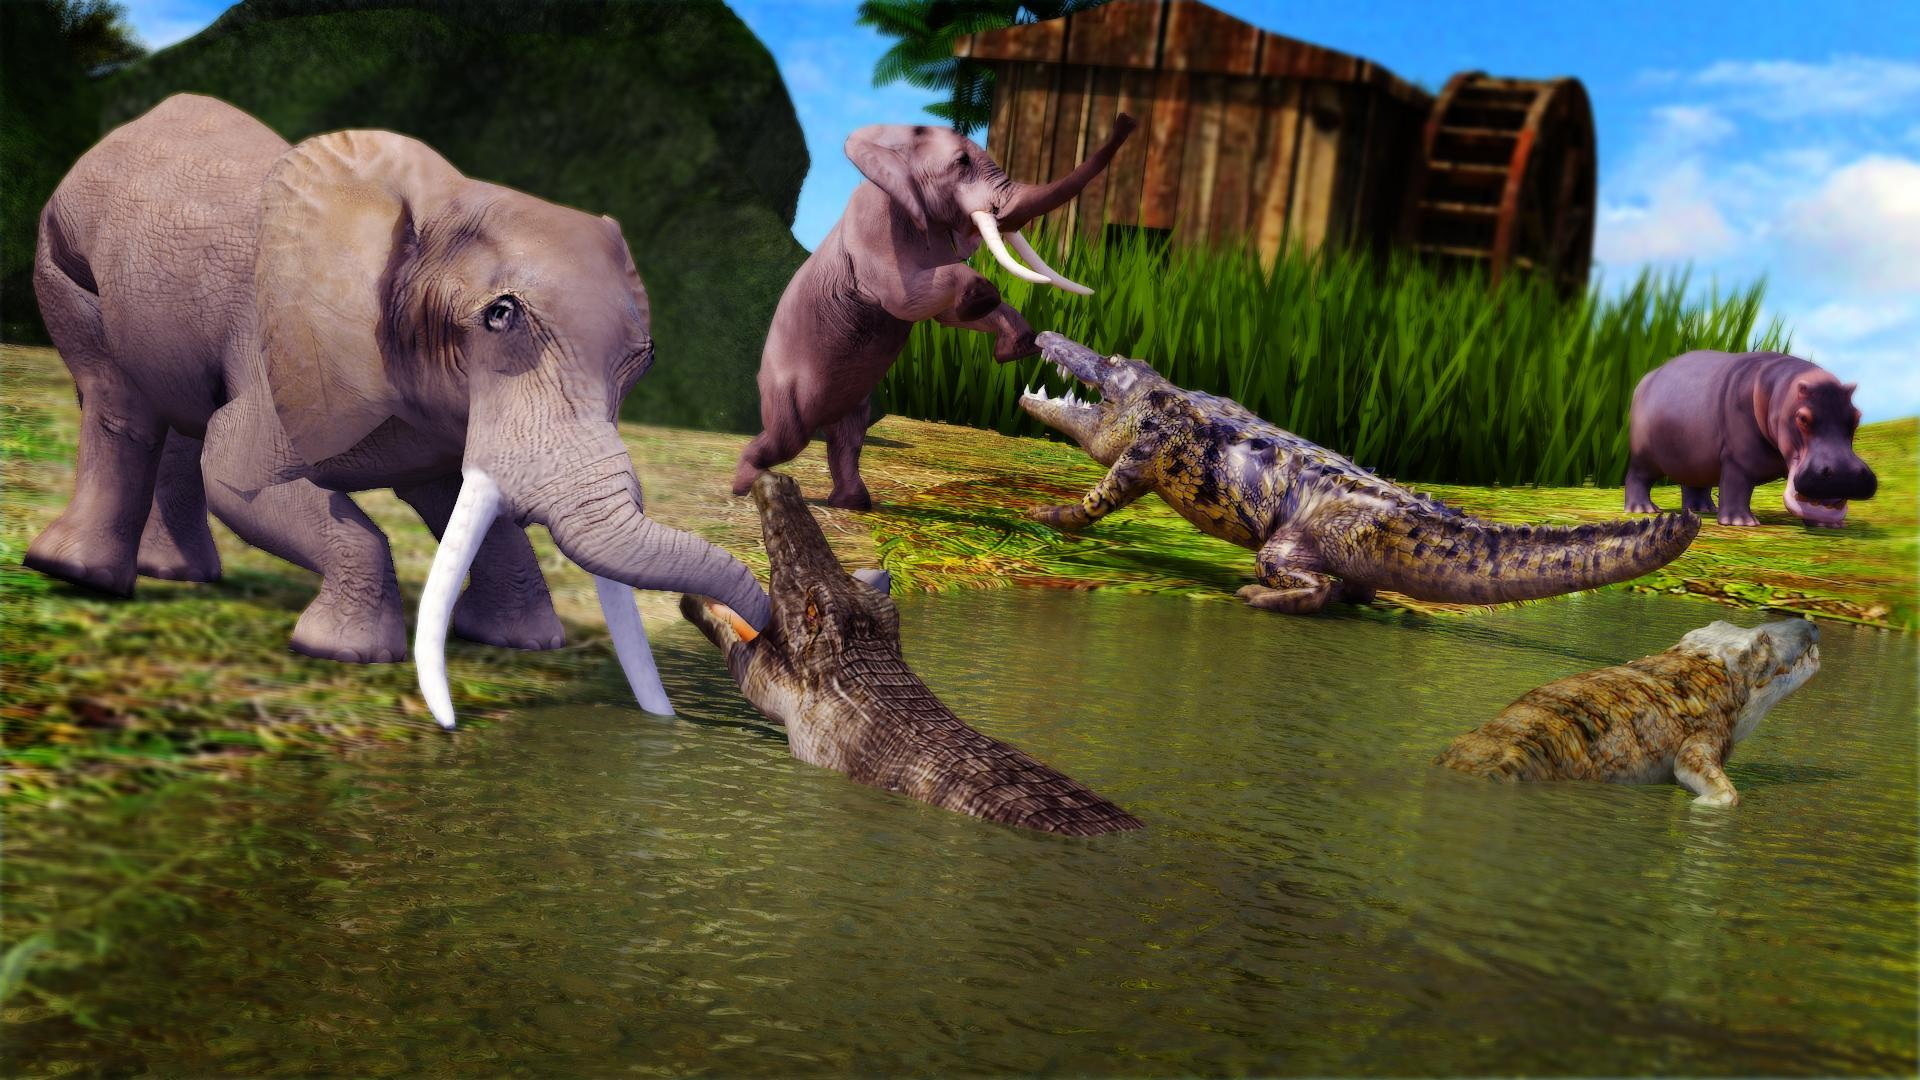 Animal Attack Simulator -Wild Hunting Games 1.0.37 Screenshot 4